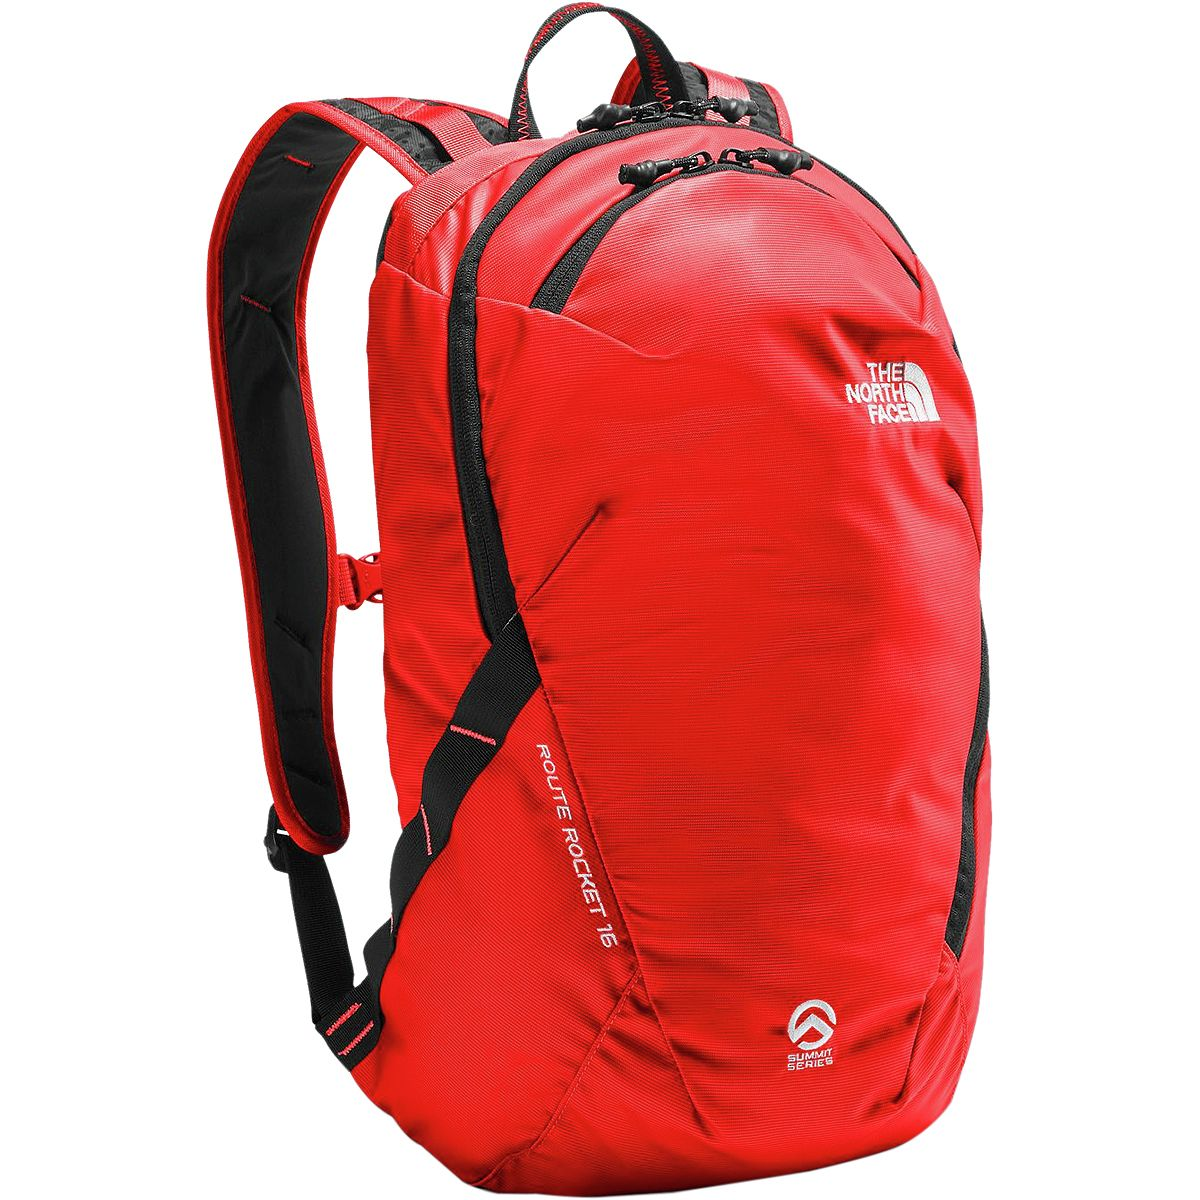 The North Face Route Rocket 16L